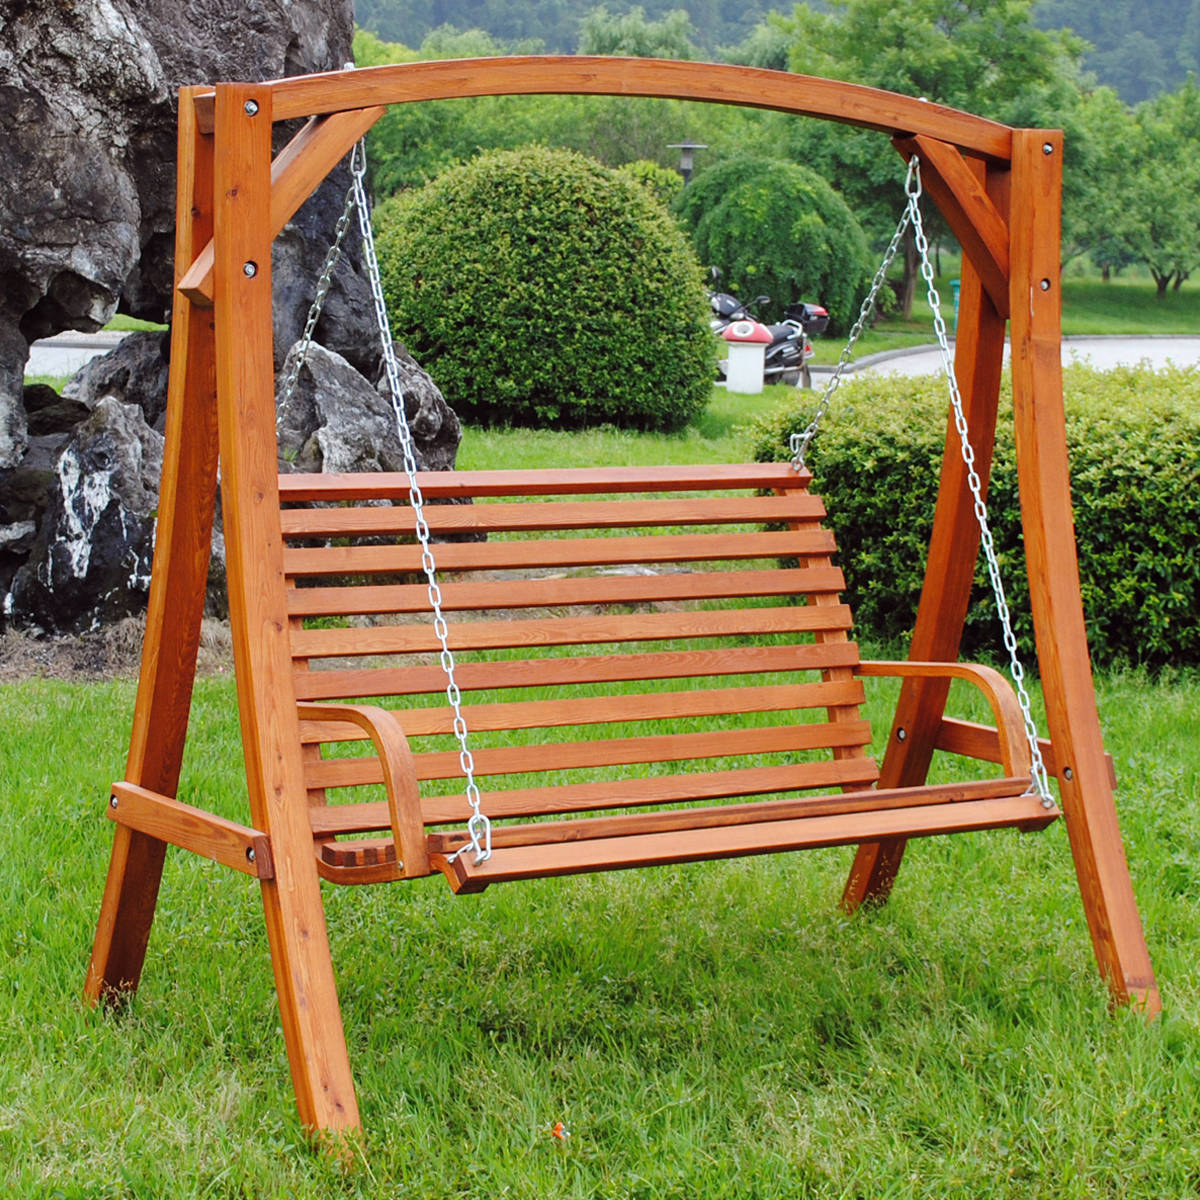 garden seats bentley-garden-wooden-2-seater-swing-chair-2 IBVDDYR